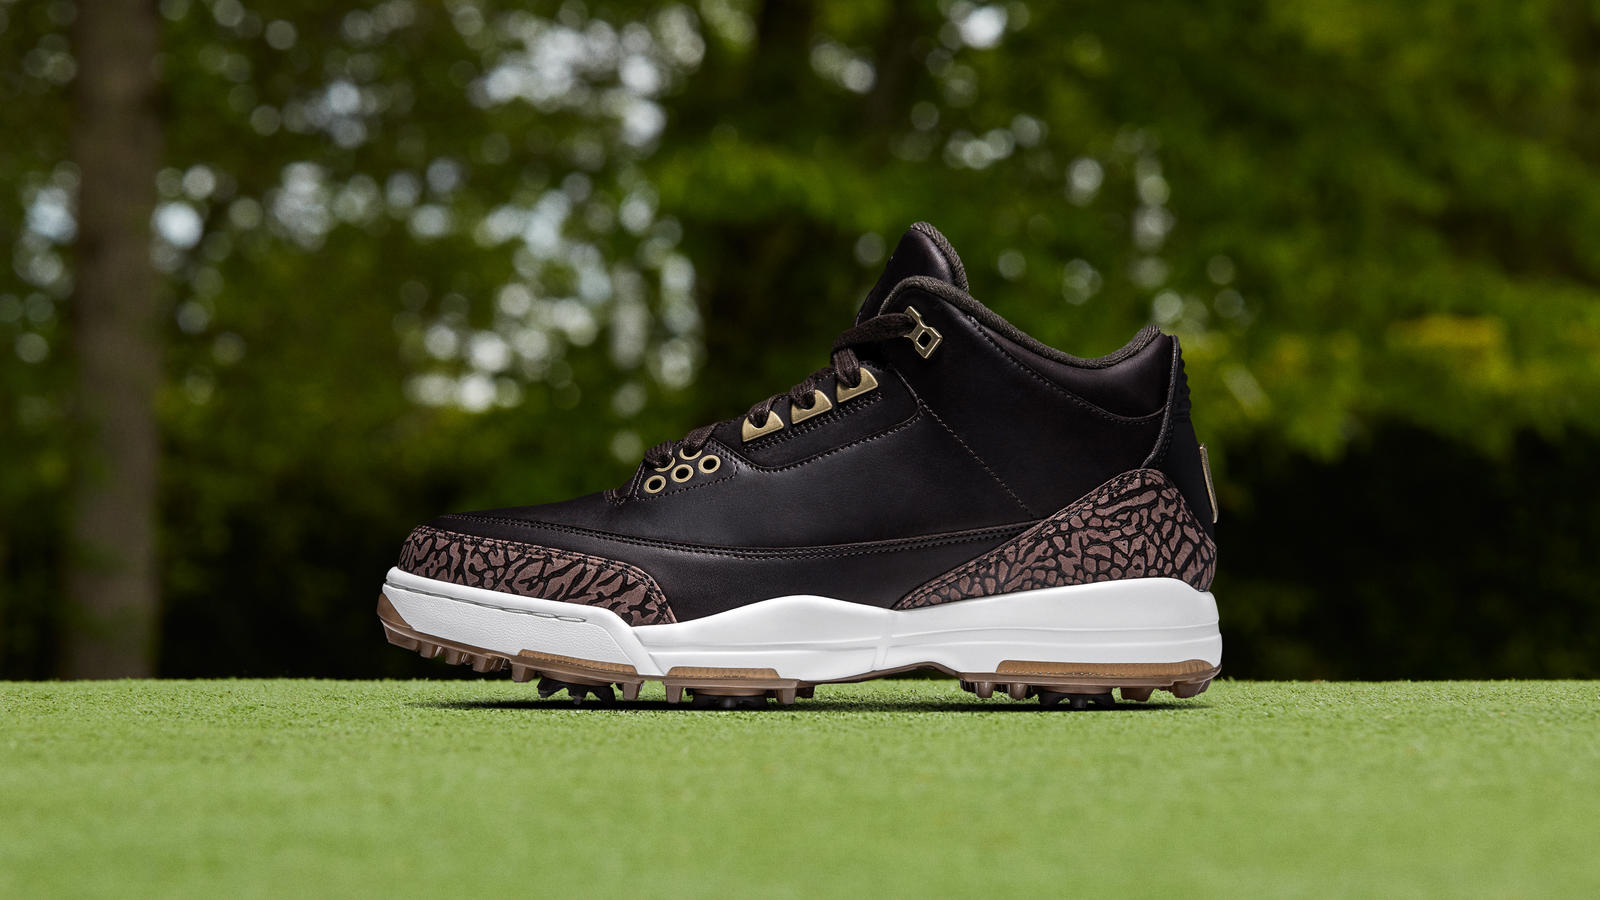 Air Jordan 3 Golf Shoe Premium - Nike News 9267eeae1